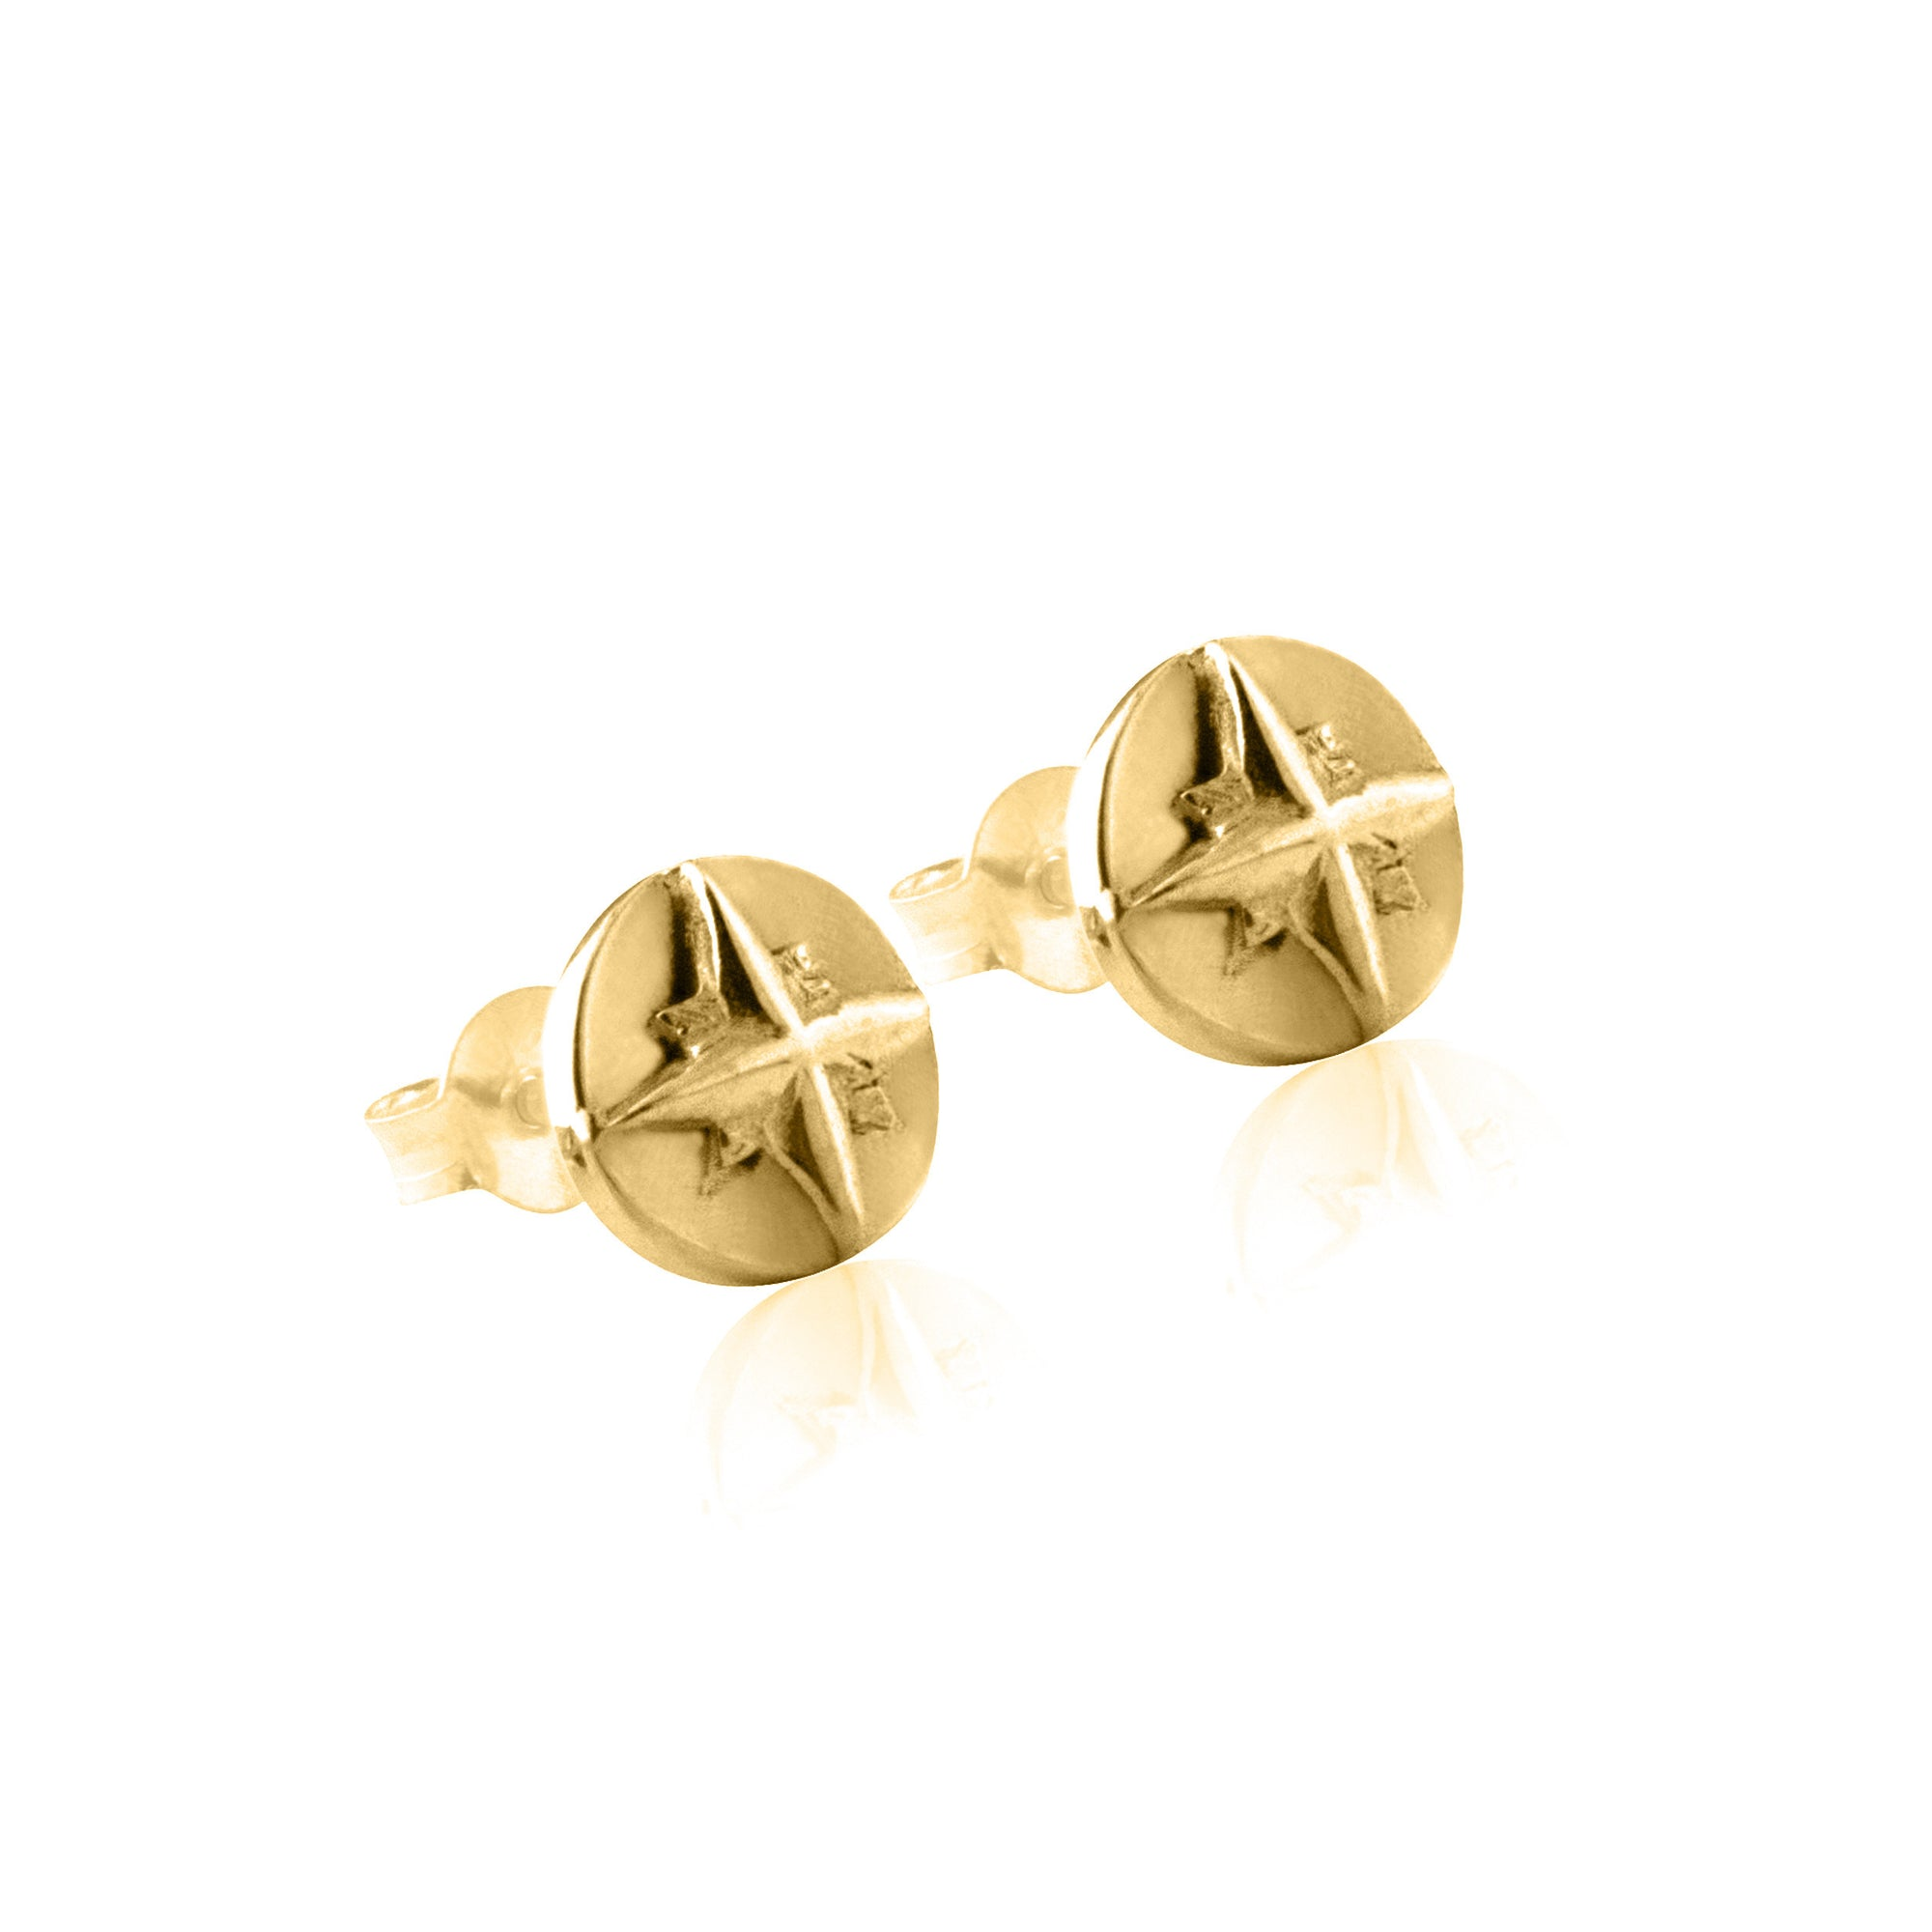 Born to roam Earrings (Gold)